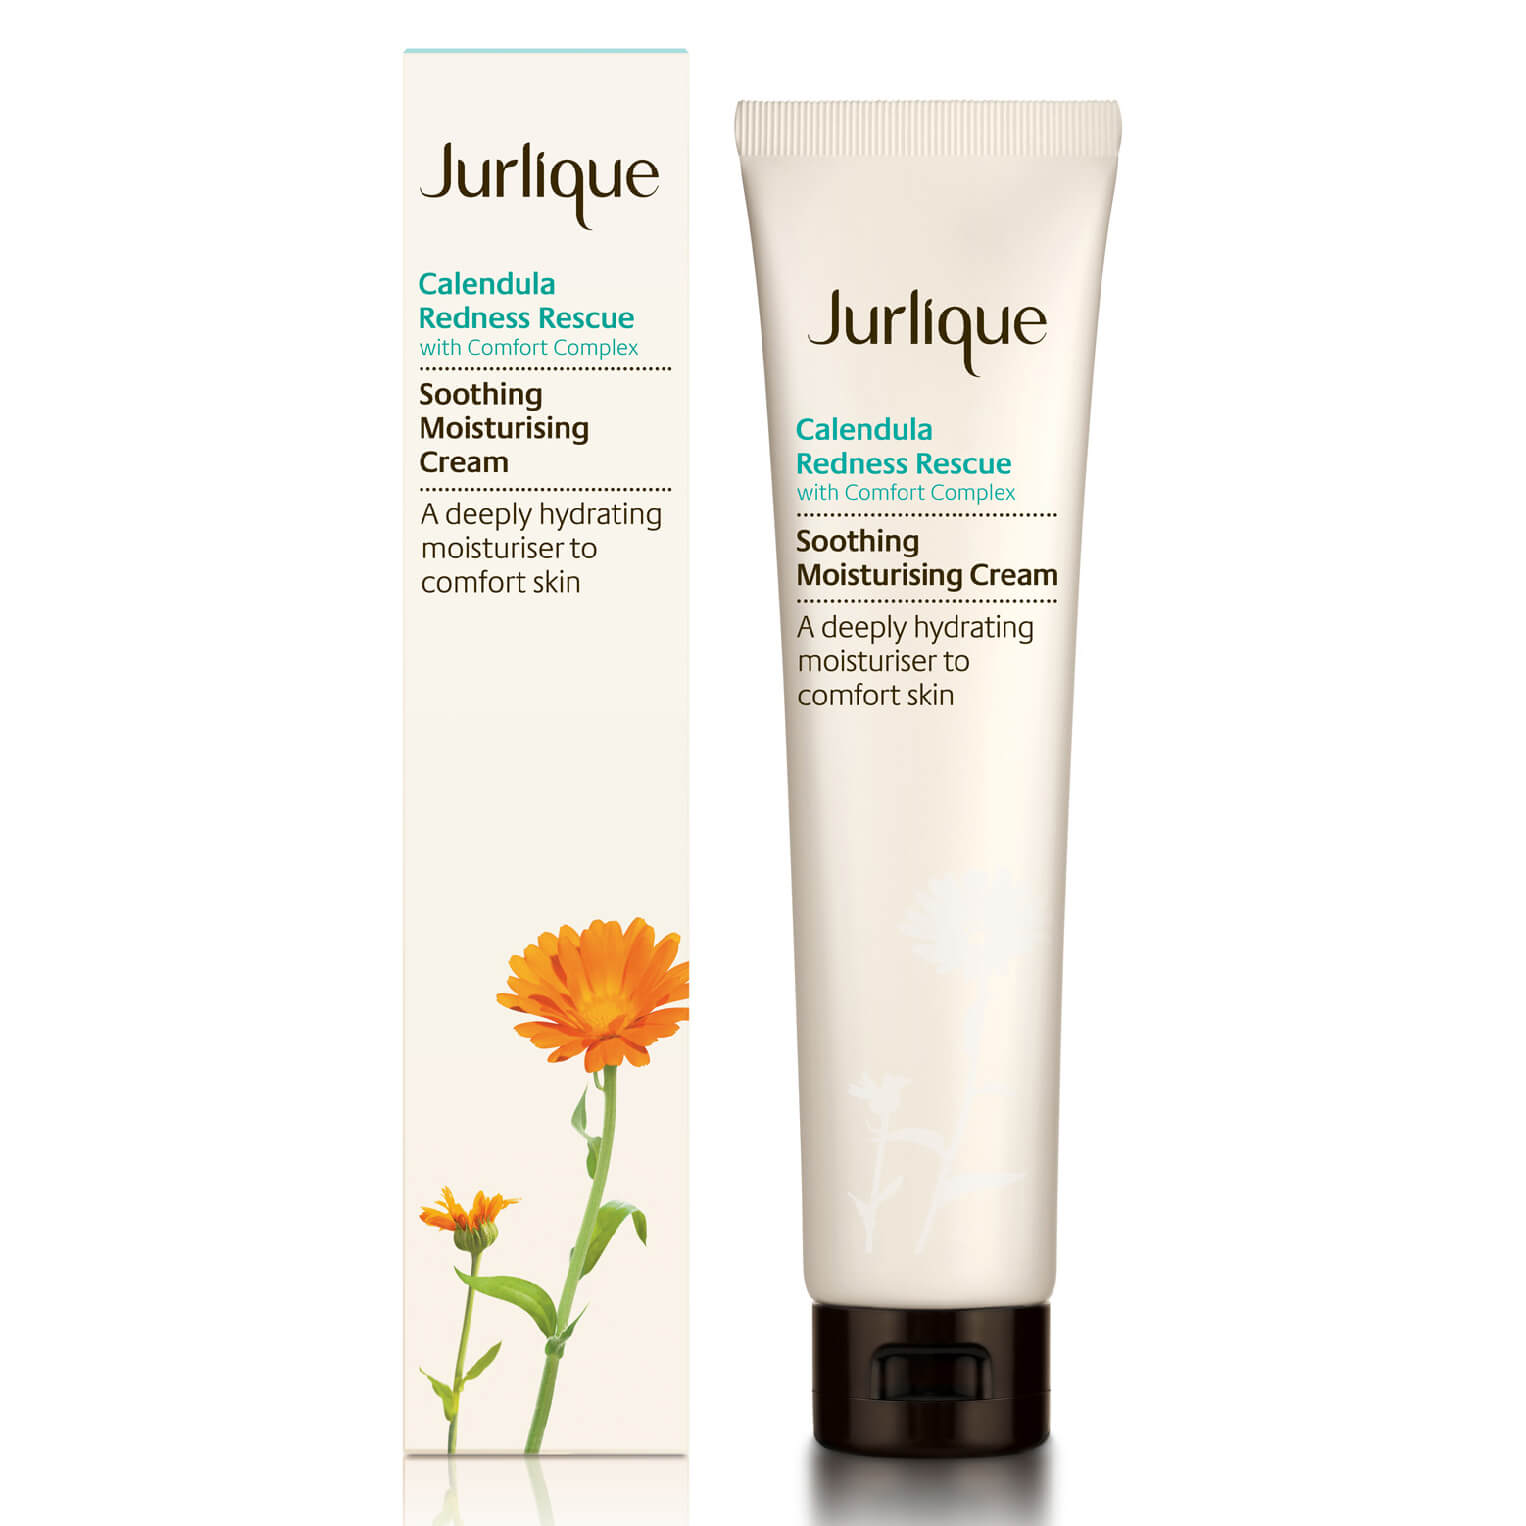 Jurlique Calendula Redness Rescue Soothing Moisturizing Cream (1.4oz)